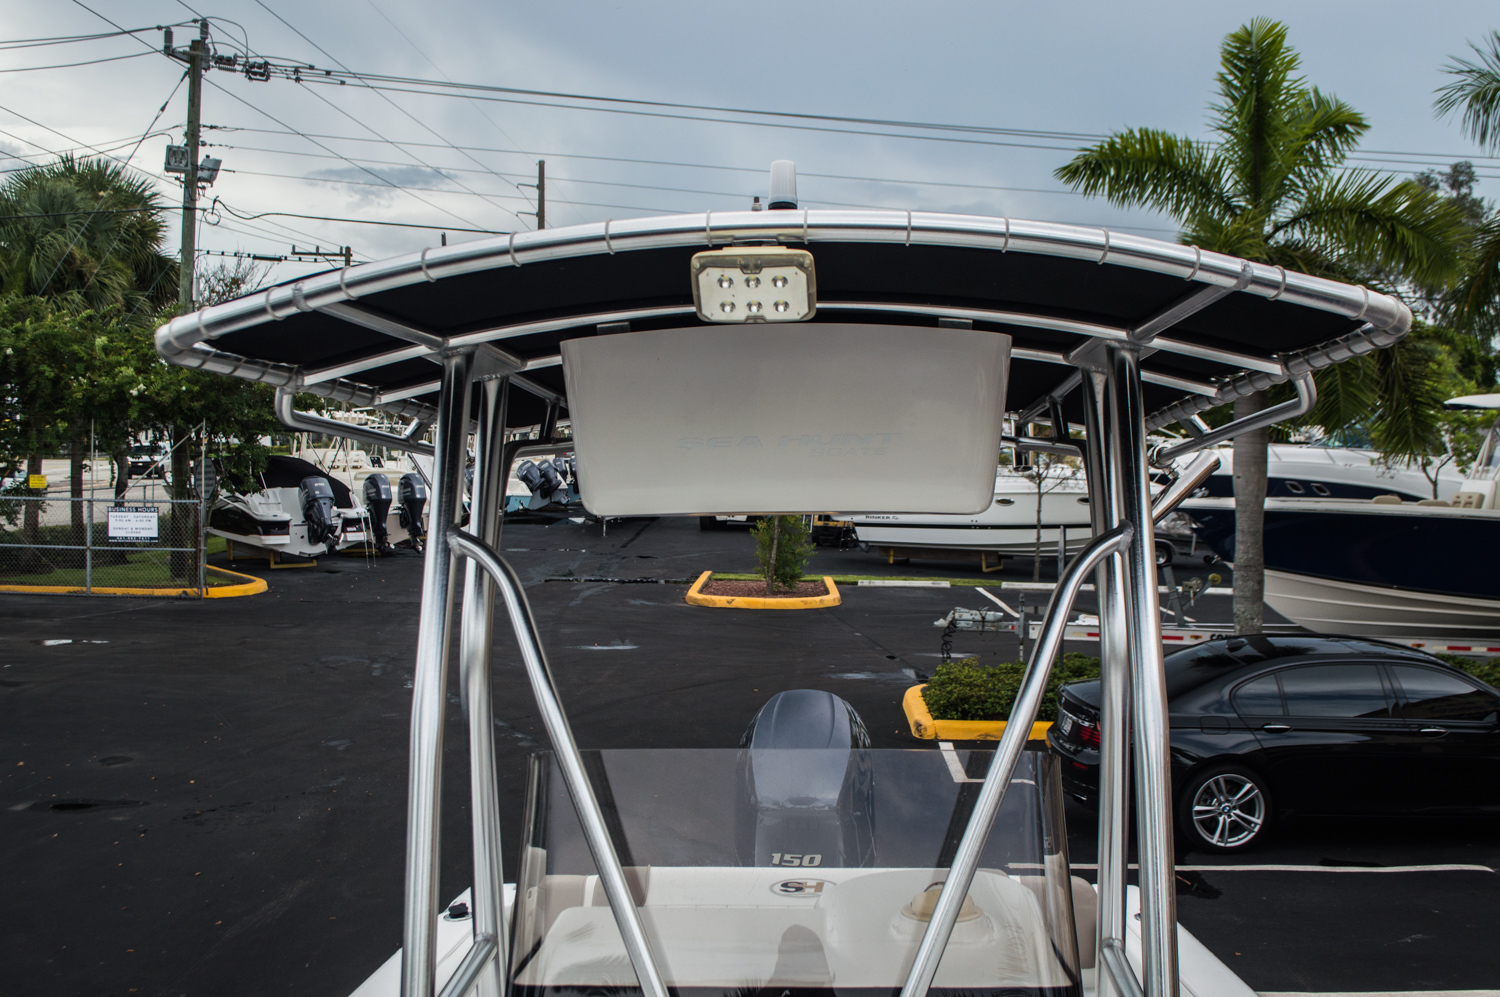 Thumbnail 19 for Used 2012 Sea Hunt 211 Ultra boat for sale in West Palm Beach, FL